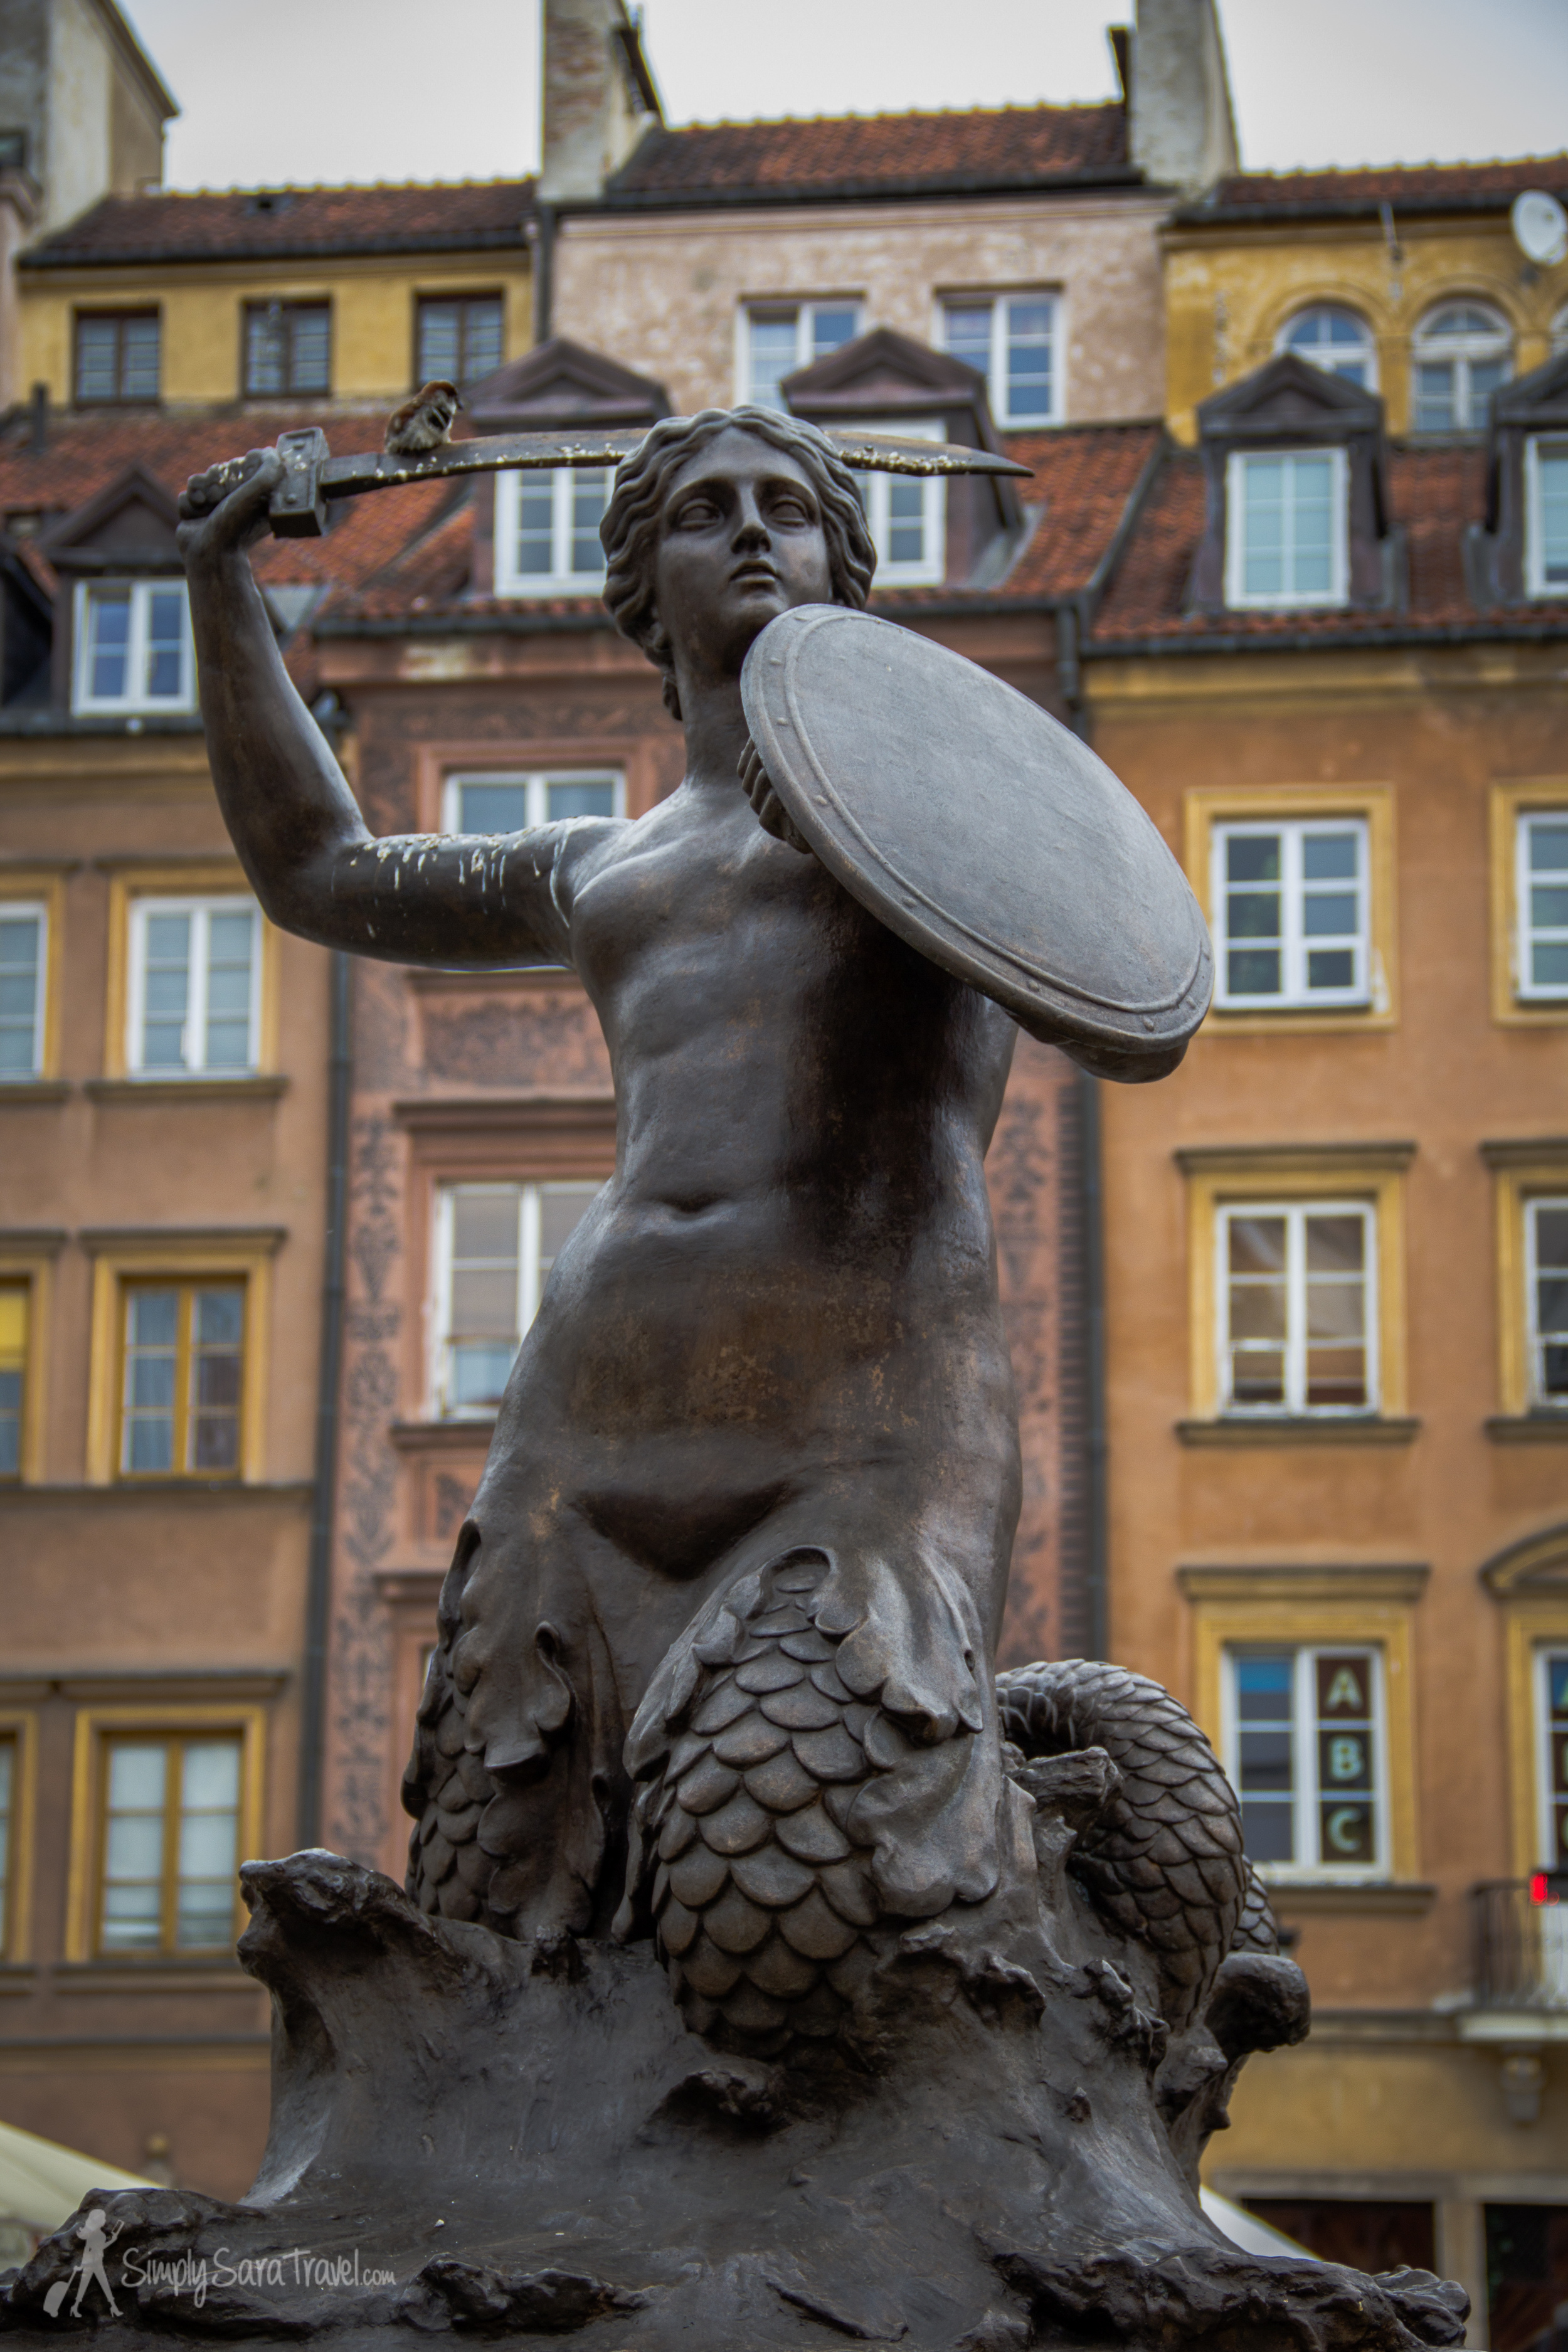 This is the Mermaid of Warsaw, the city's protector, as commemorated in the Old Town Square. To me, this reminds me of the spirit of the Varsovians. No mermaid fought their battles - they have endured great hardships and have persevered. And the future is bright for this city.